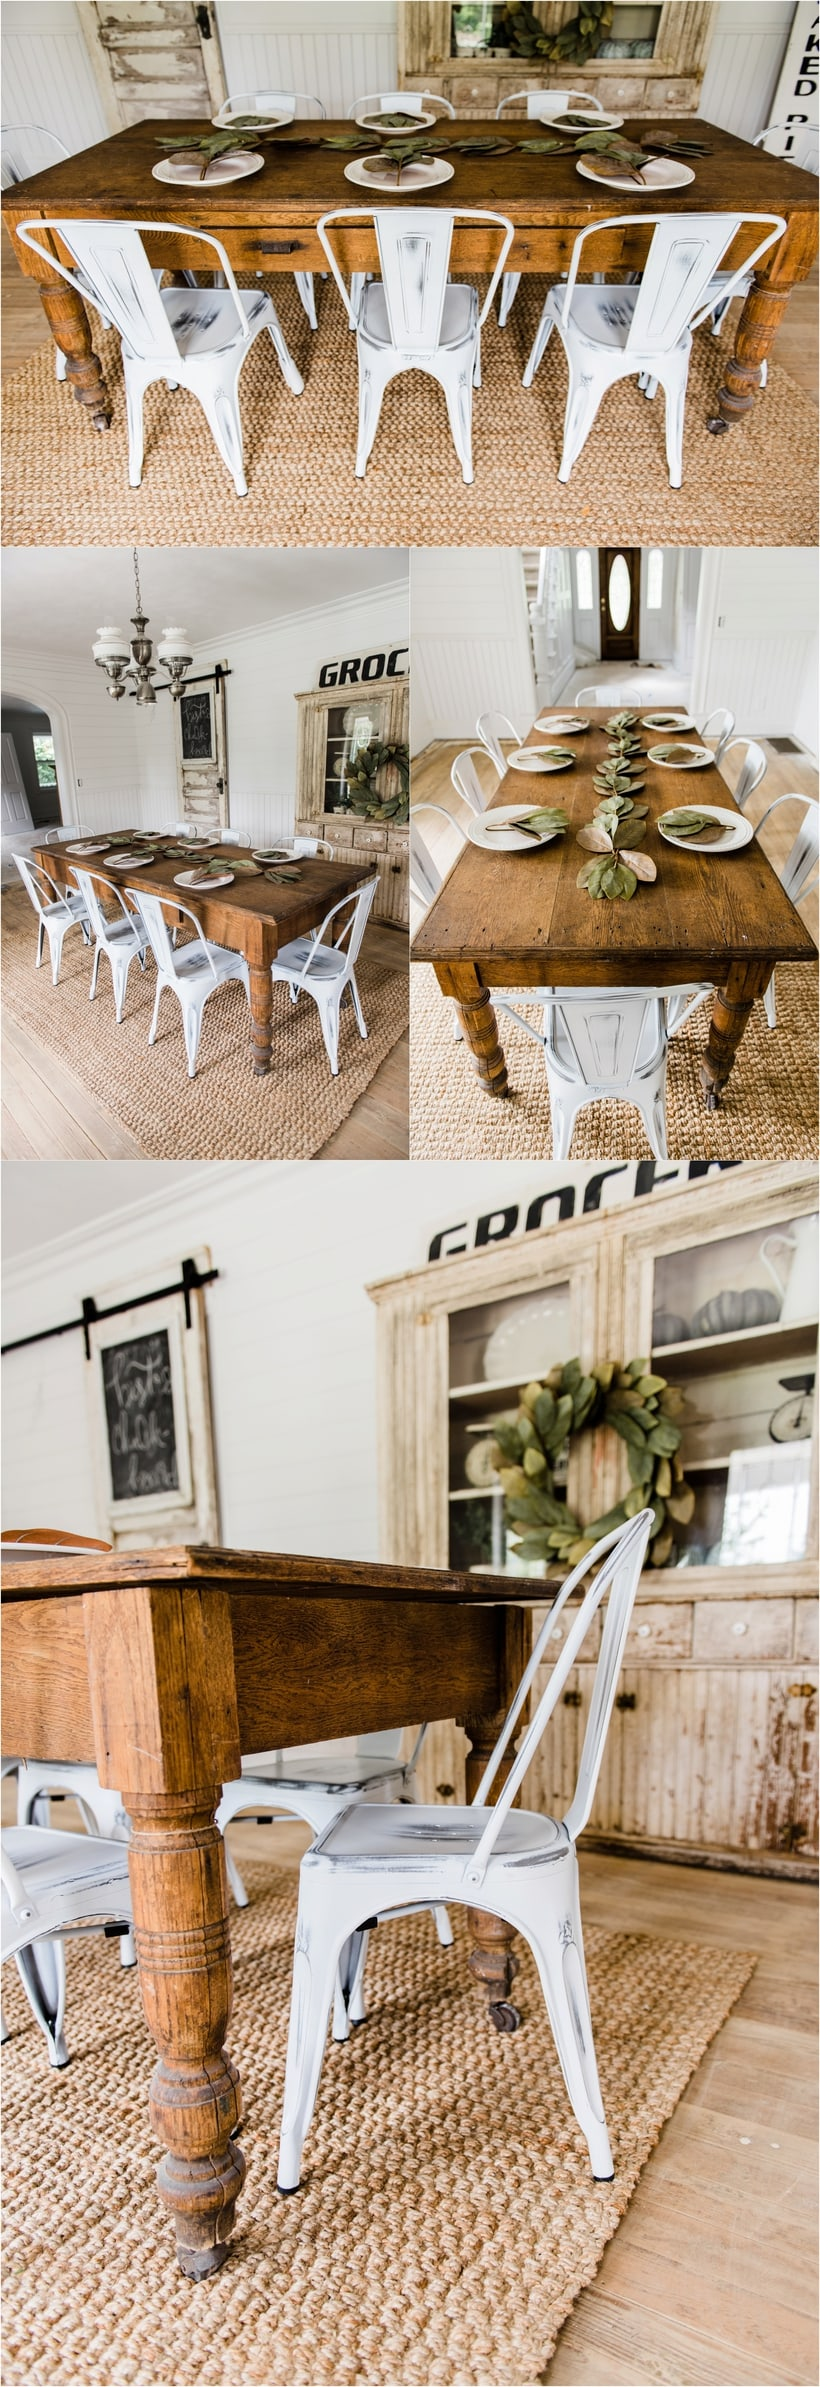 New farmhouse dining chairs for White dining room decor